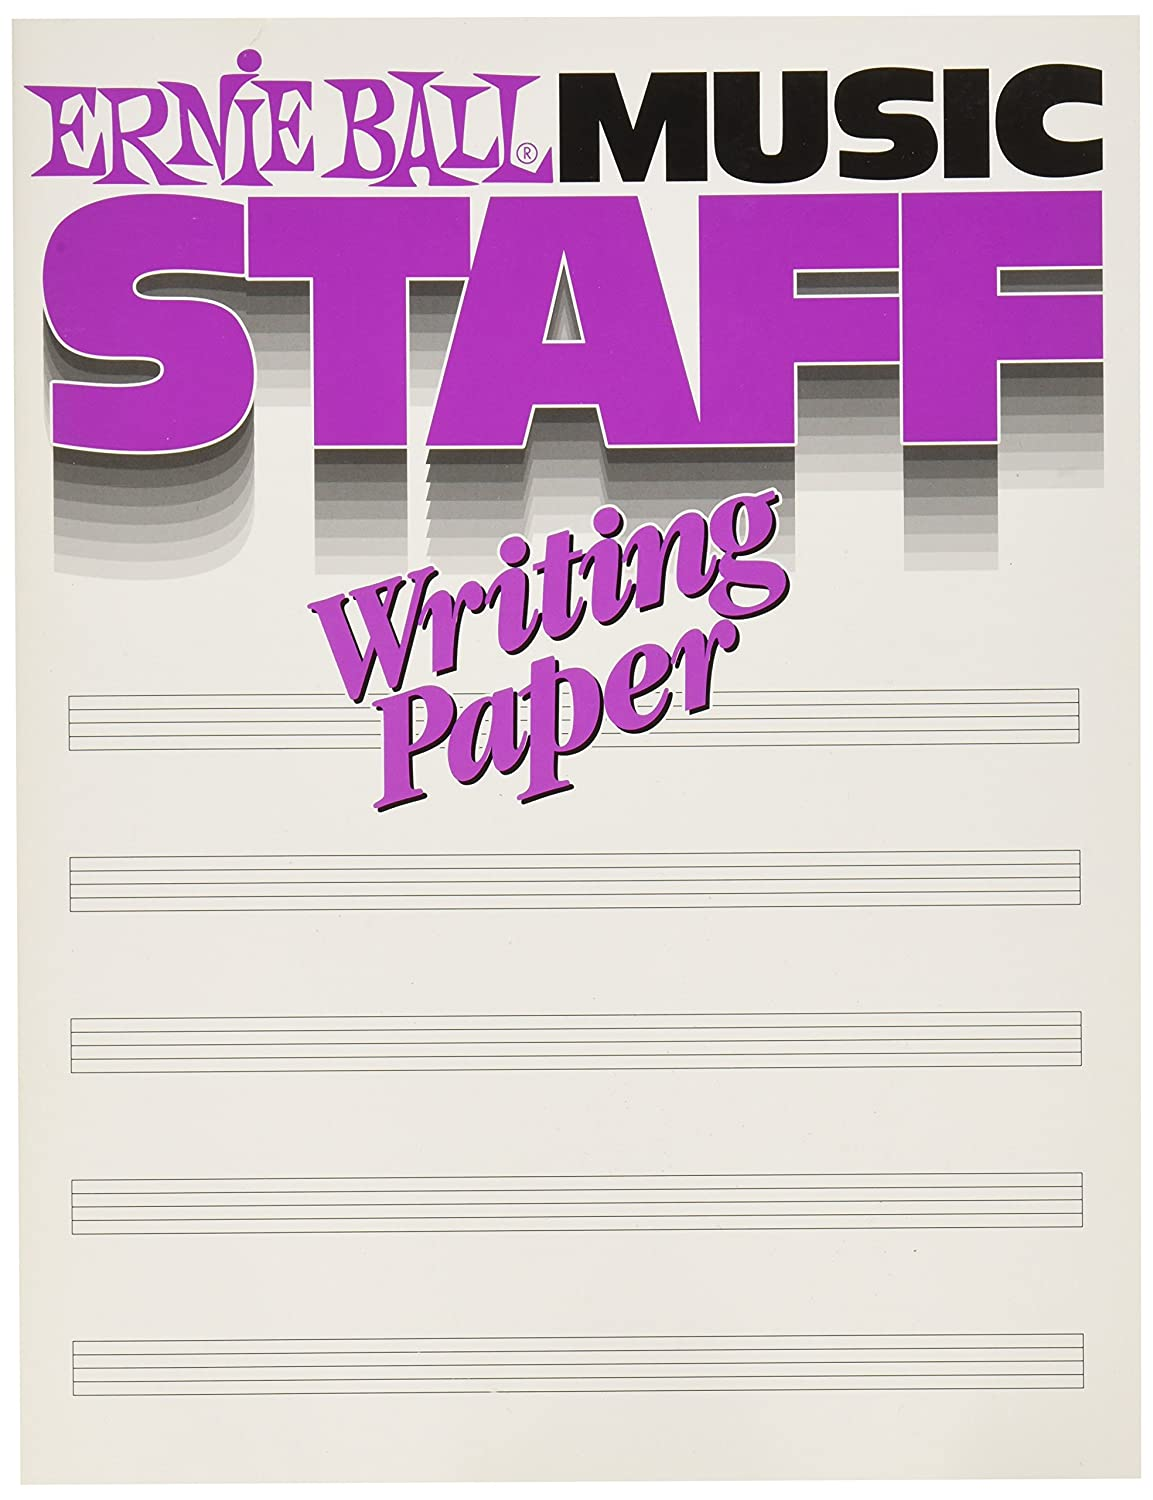 Ernie Ball 7019 Music Staff Writing Paper Book P07019